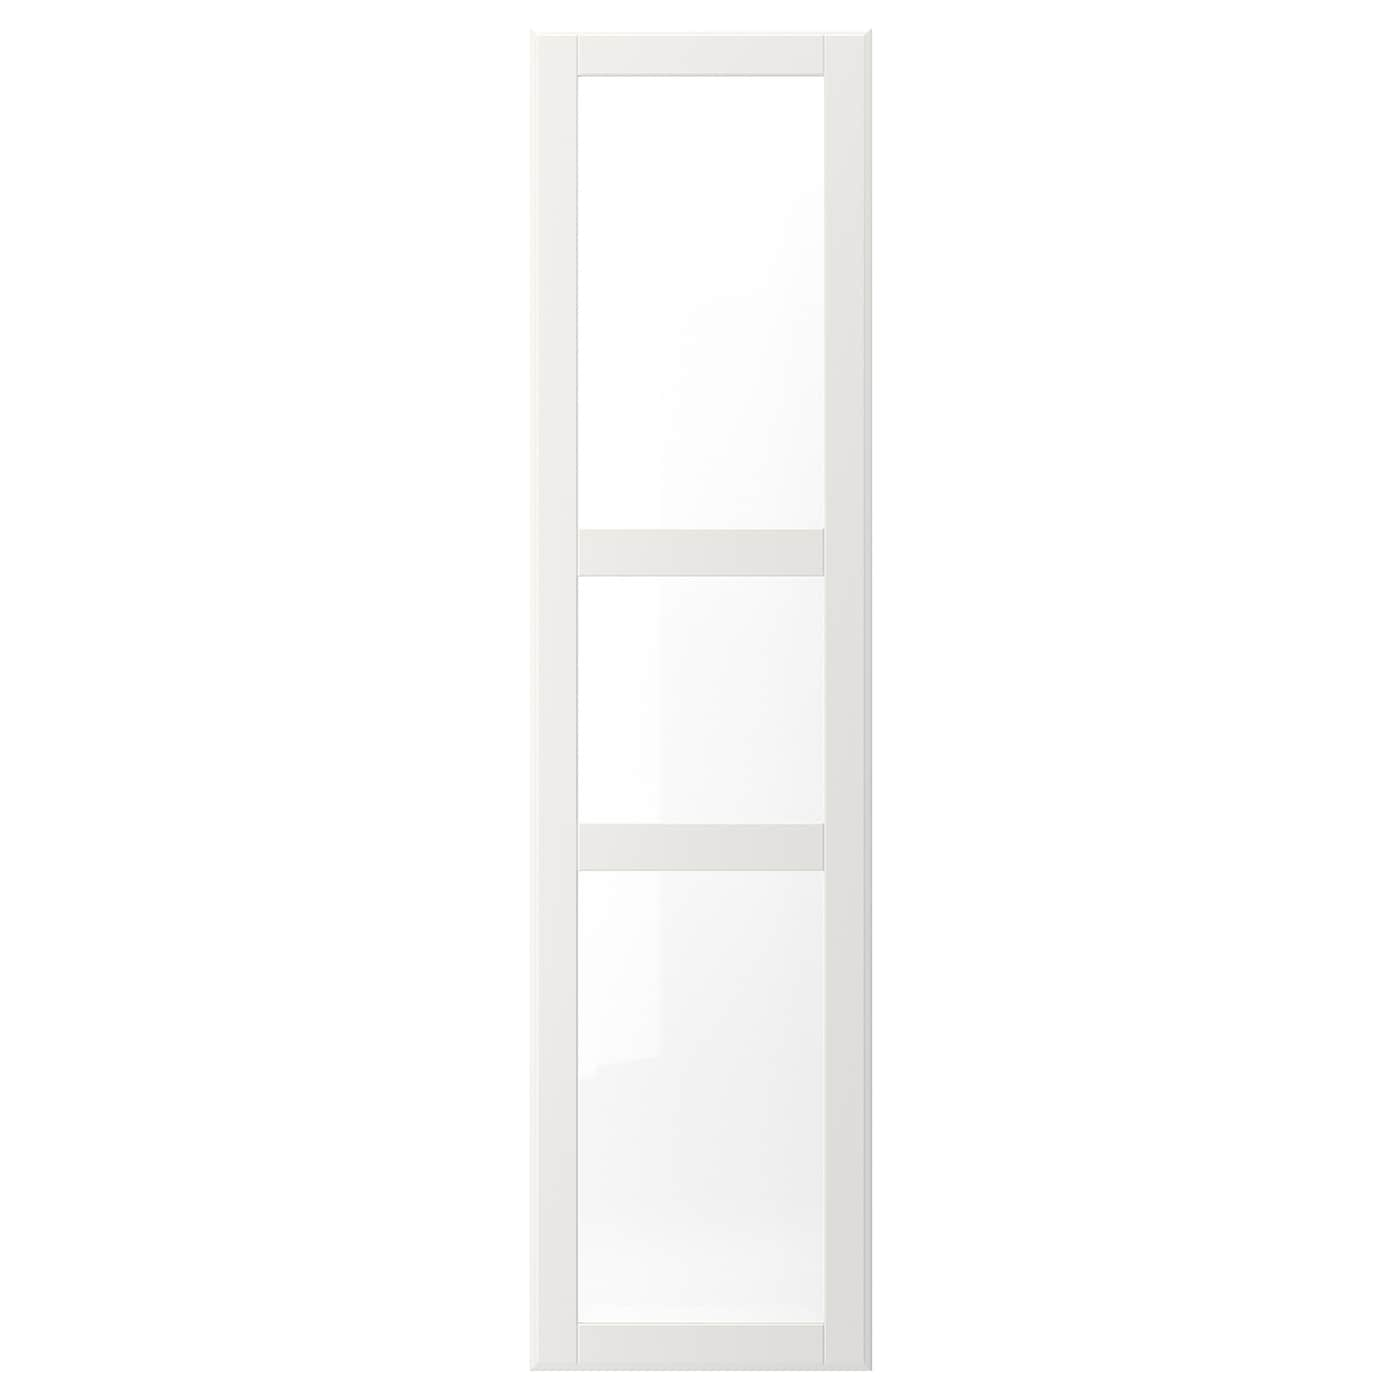 IKEA TYSSEDAL door 10 year guarantee. Read about the terms in the guarantee brochure.